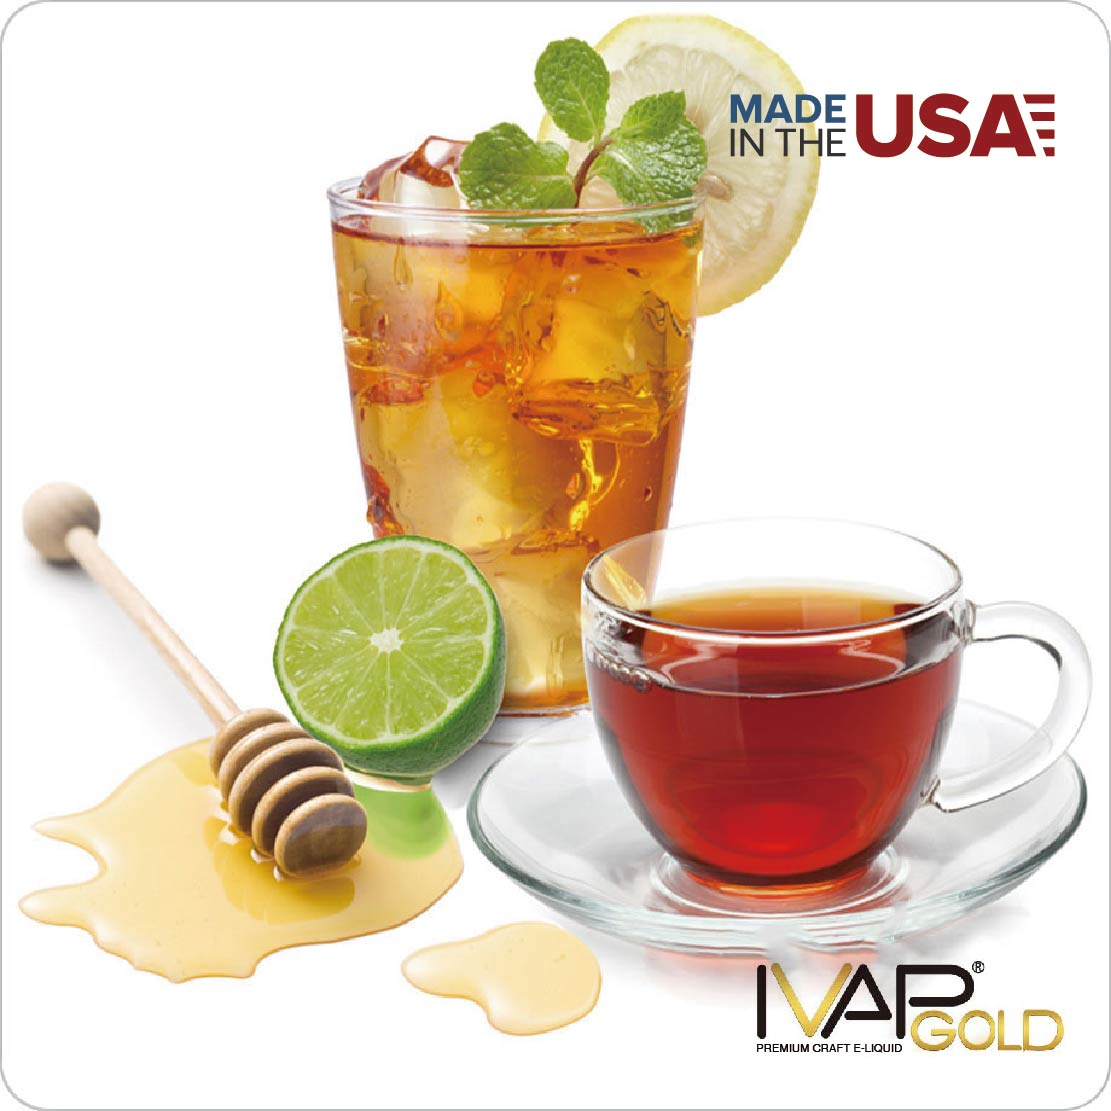 Buy E-Liquid, E juice, Vape, E cigarette in New Zealand. Made in USA.